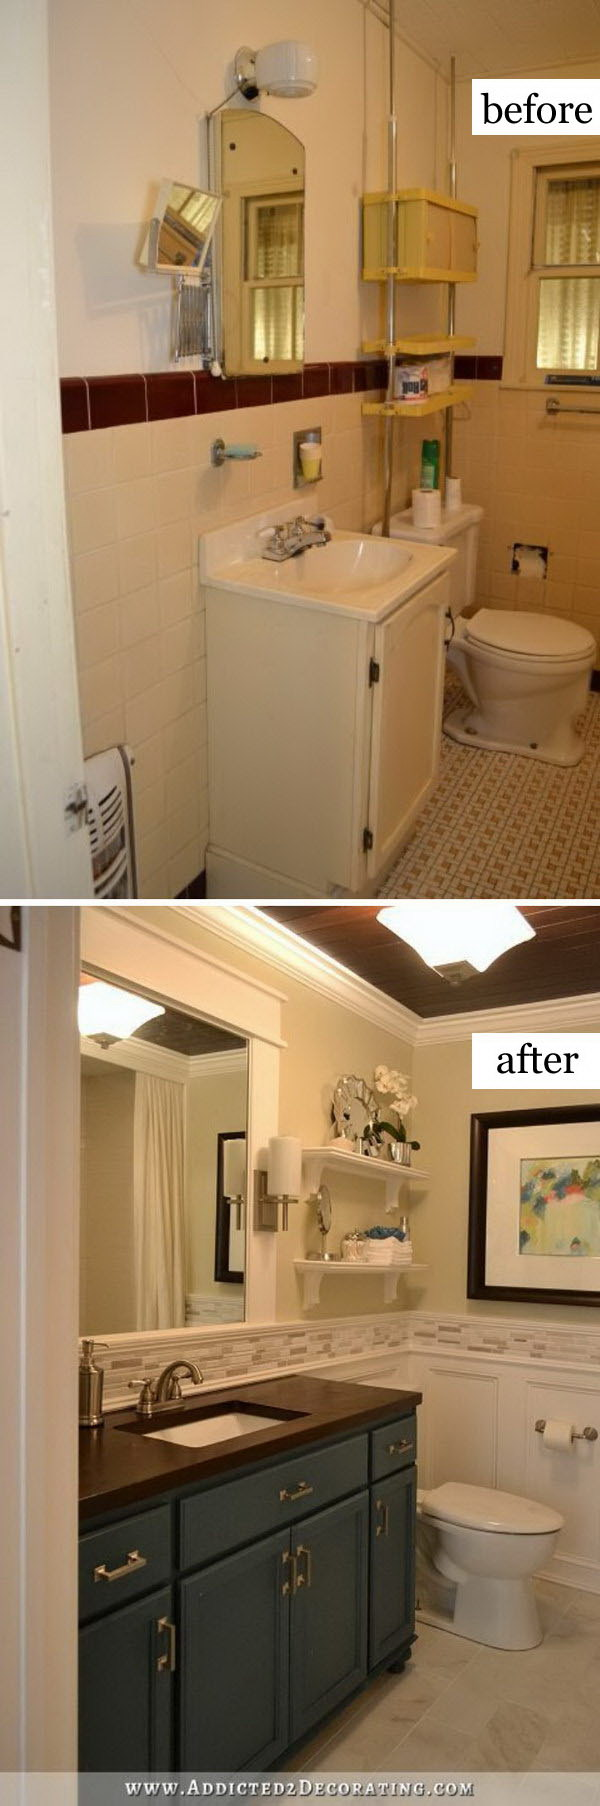 Hallway Bathroom Remodel: Before & After .